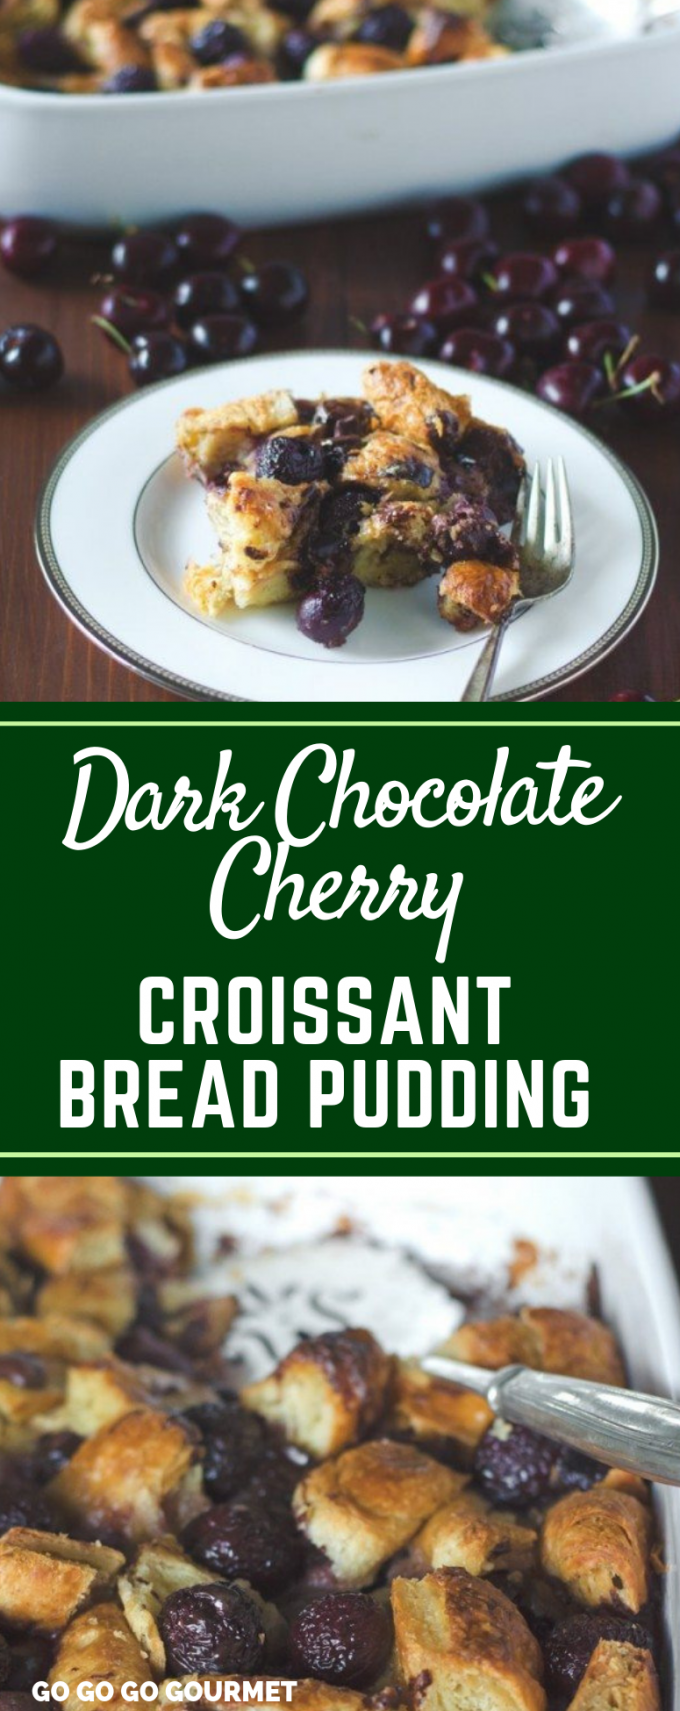 This easy Dark Chocolate Cherry Croissant Bread Pudding recipe is perfect for breakfast, brunch or even dessert! This old fashioned recipe is even better than the Paula Deen one! #gogogogourmet #darkchocolateccherrycroissantbreadpudding #breadpudding #croissantbreadpudding #easydesserts via @gogogogourmet